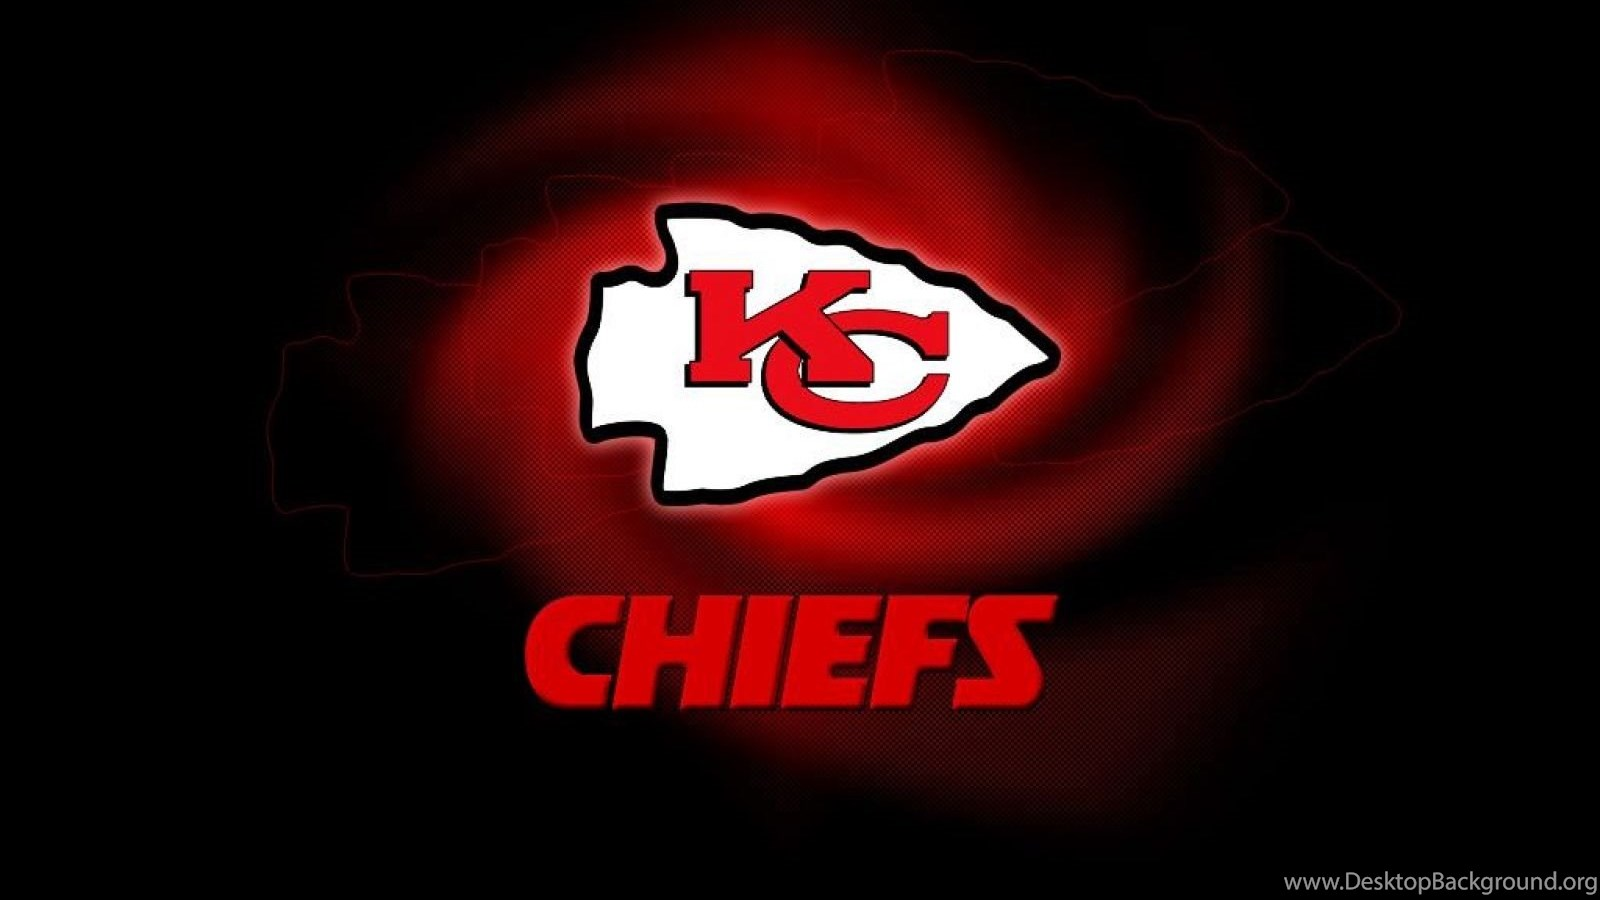 KANSAS CITY CHIEFS Nfl Football Sg Wallpapers Desktop Background